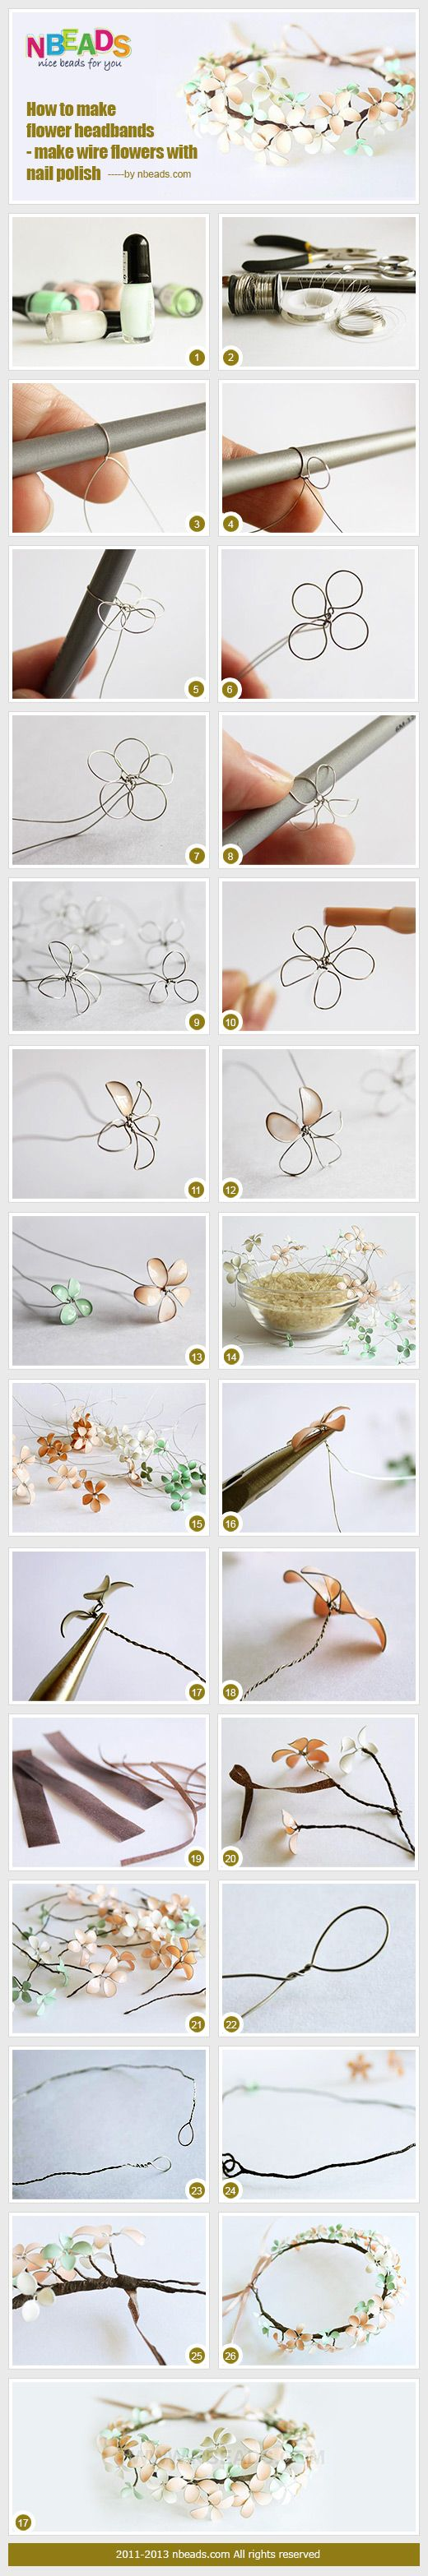 how to make flower headbands - make wire flowers with nail polish ...